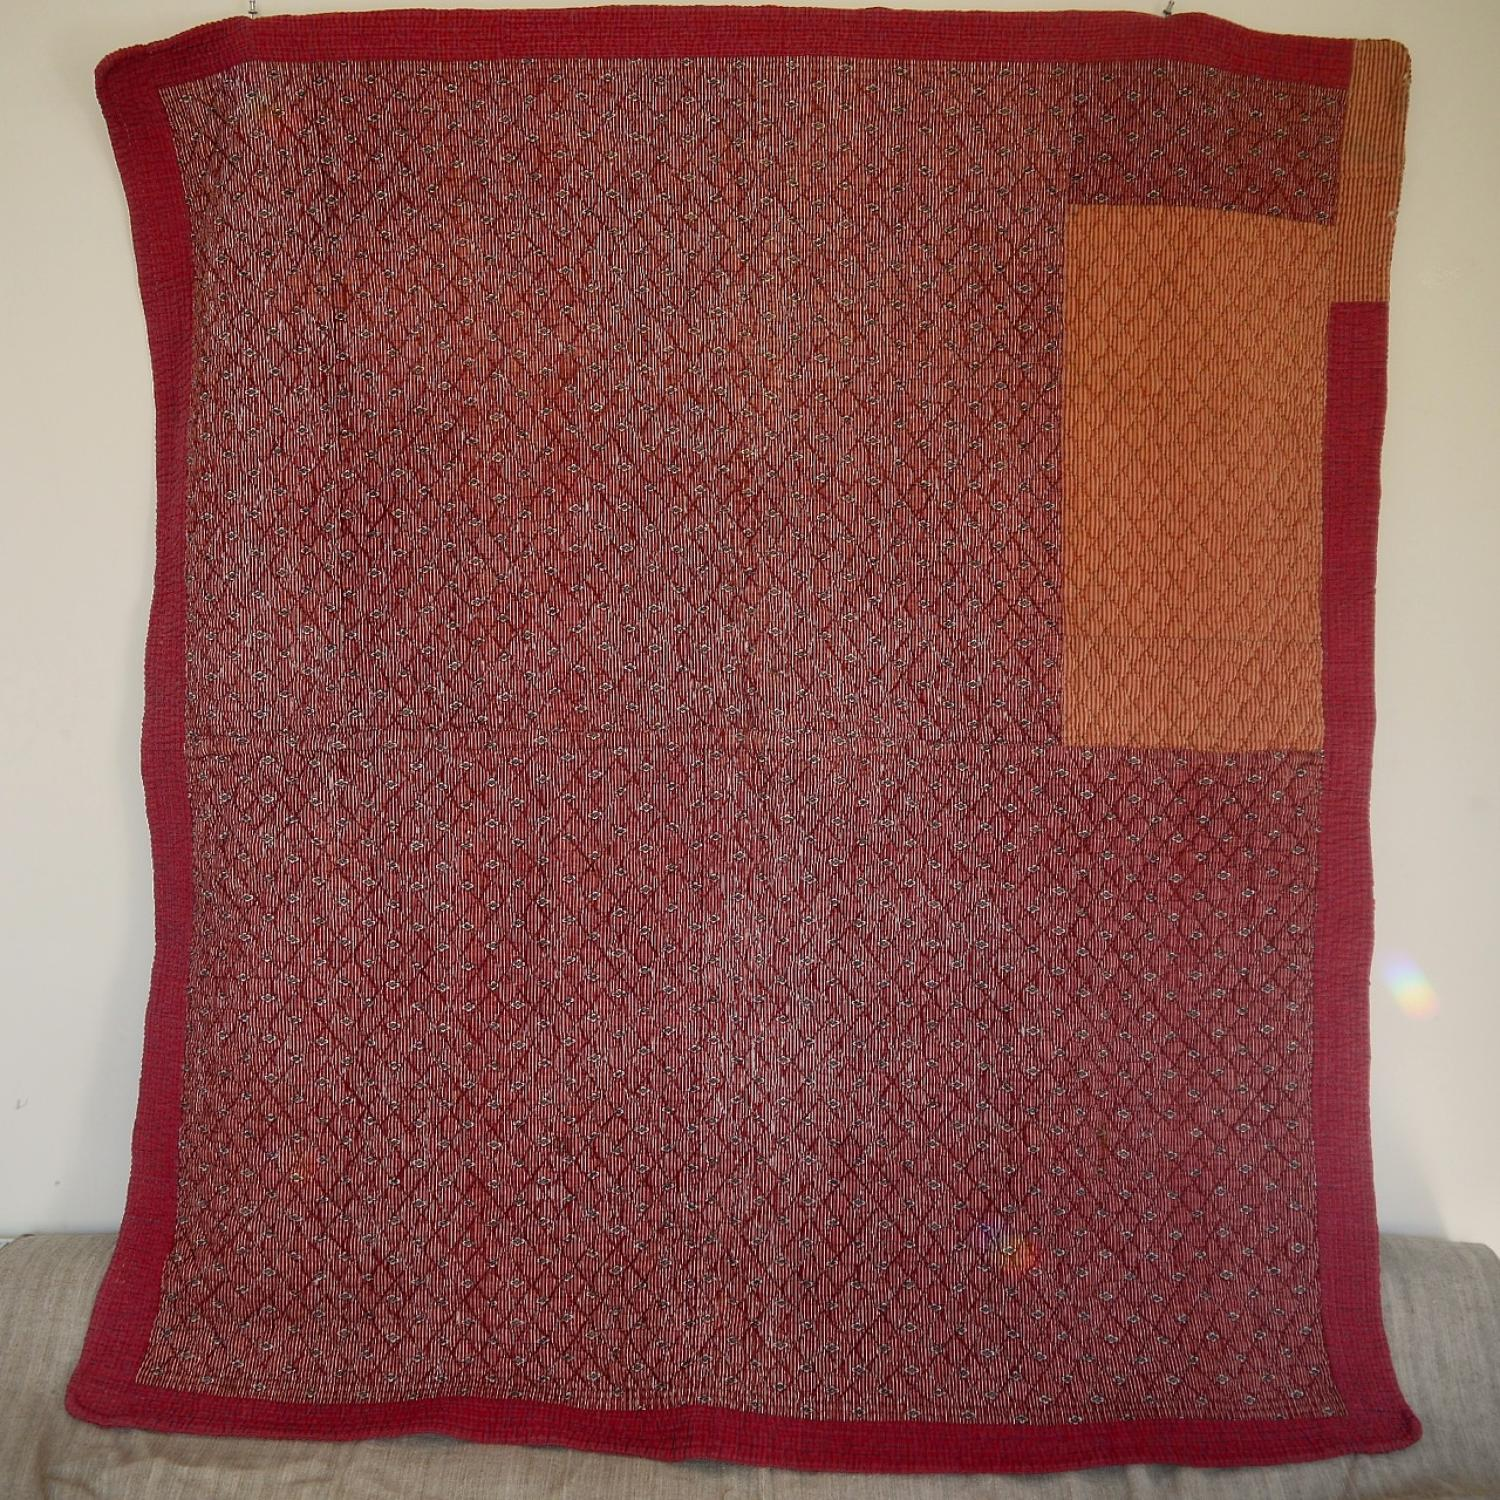 Late 18th century French red printed cotton quilt